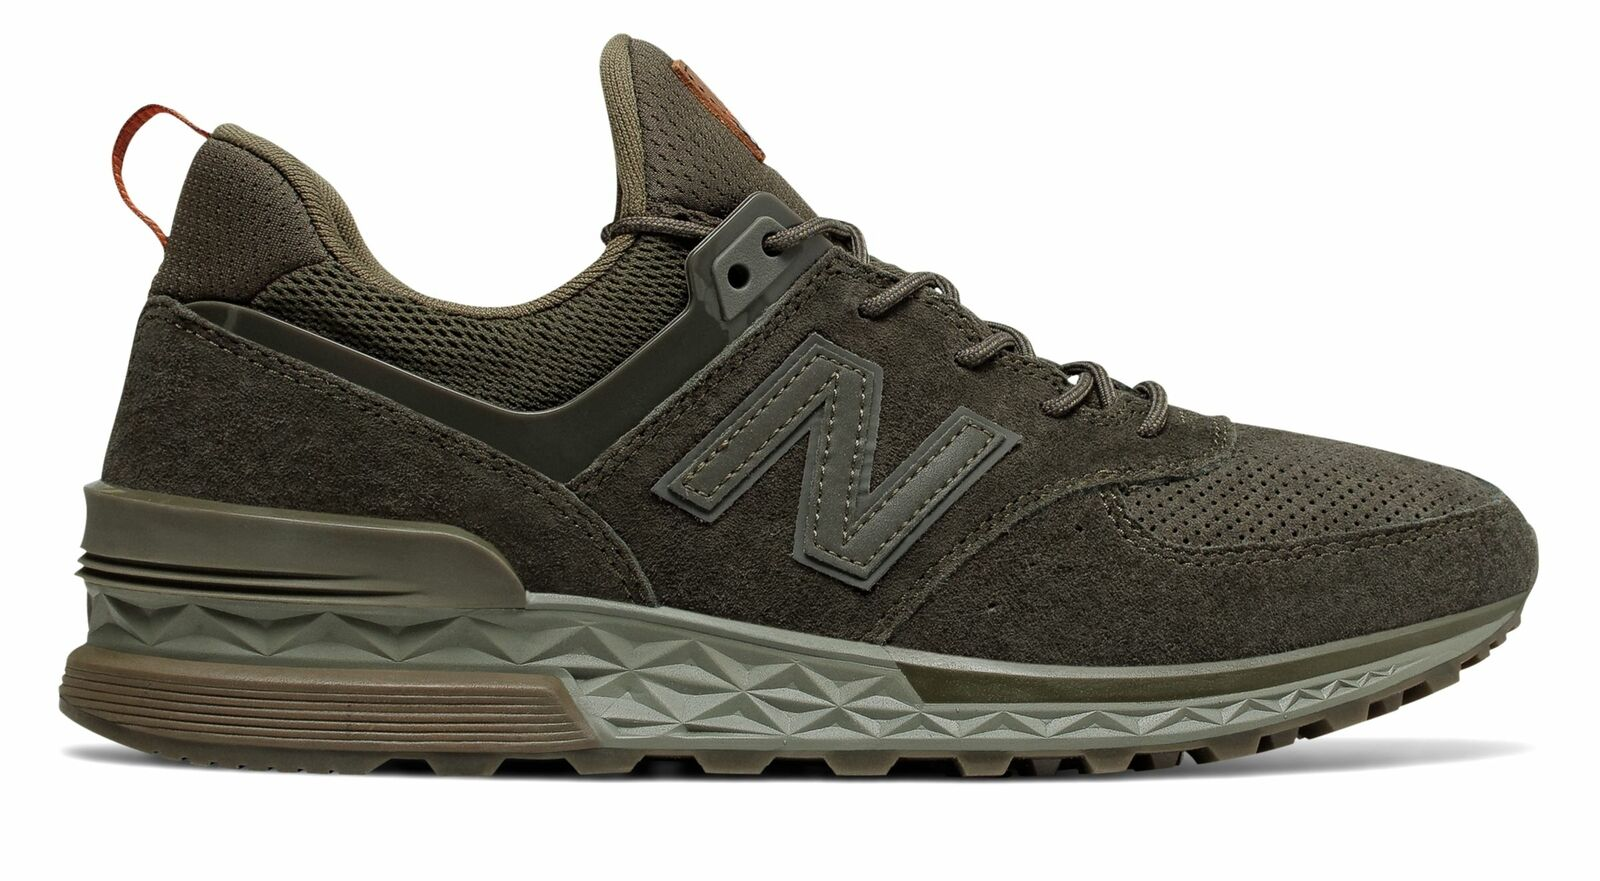 New Balance Men's 574 Sport Classic Modern-Athletic Comfortable shoes Green